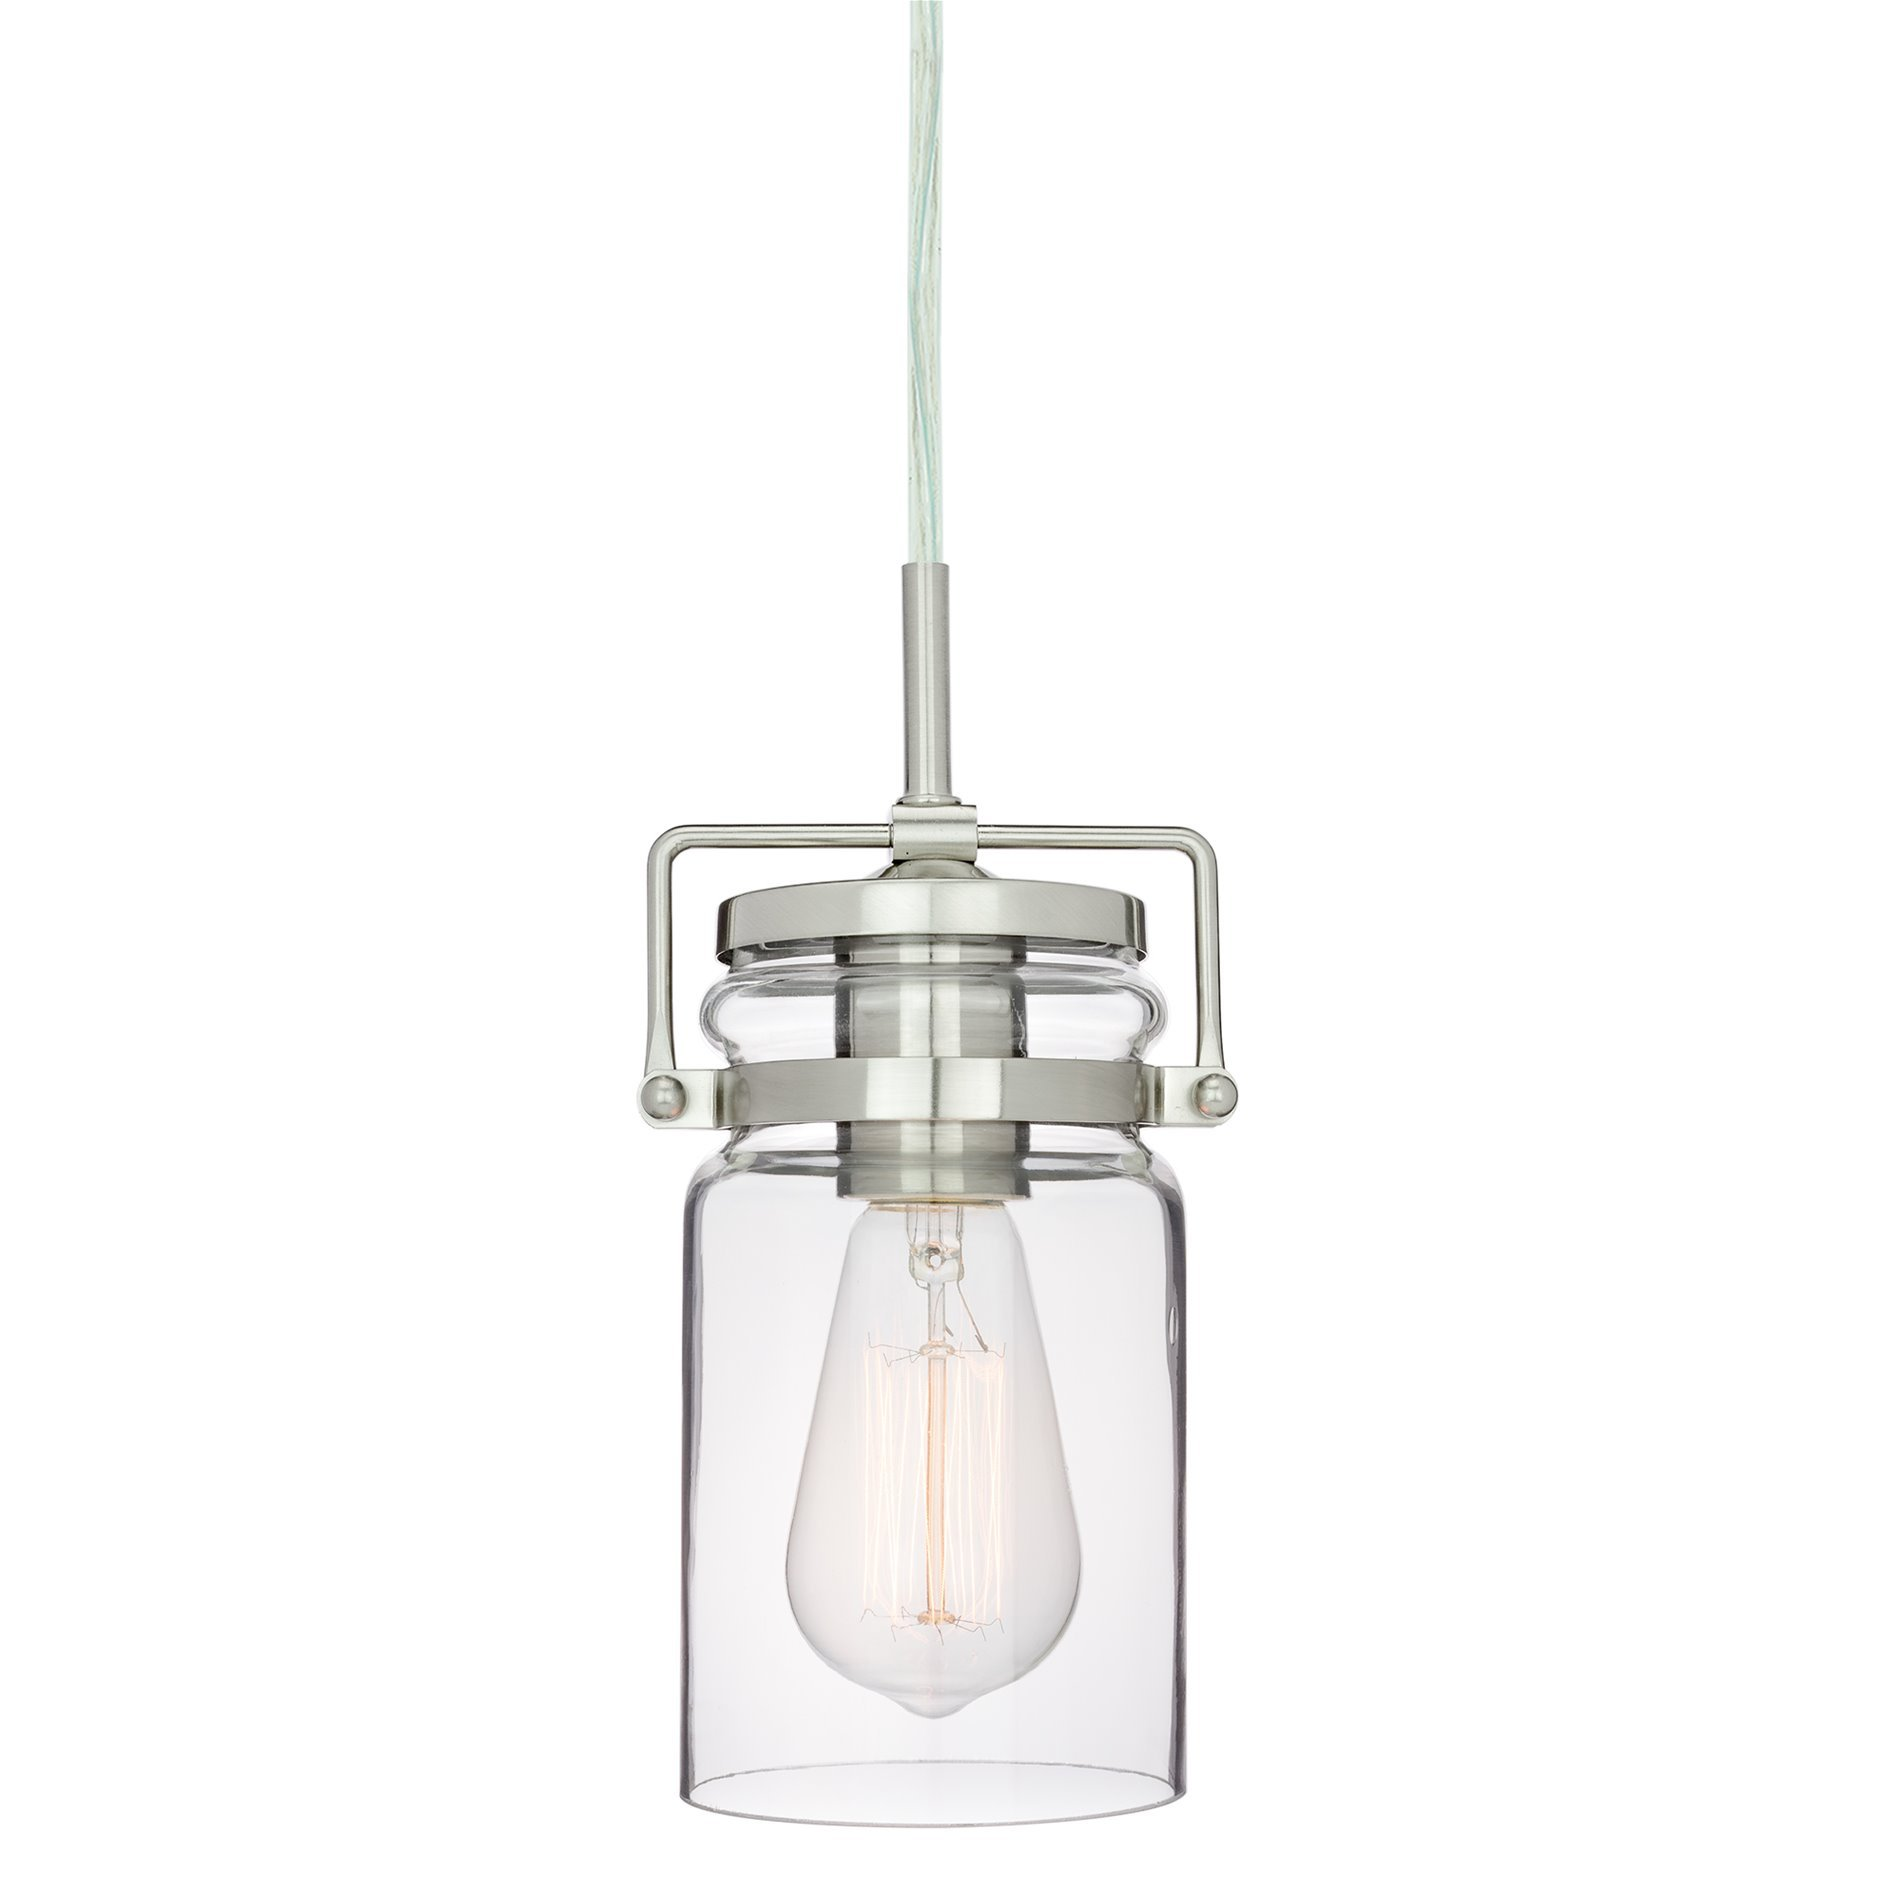 Revel Wyer 8'' Modern Industrial Mini Glass Jar Wired Pendant Light, Energy Efficient, Eco-Friendly, Brushed Nickel Finish